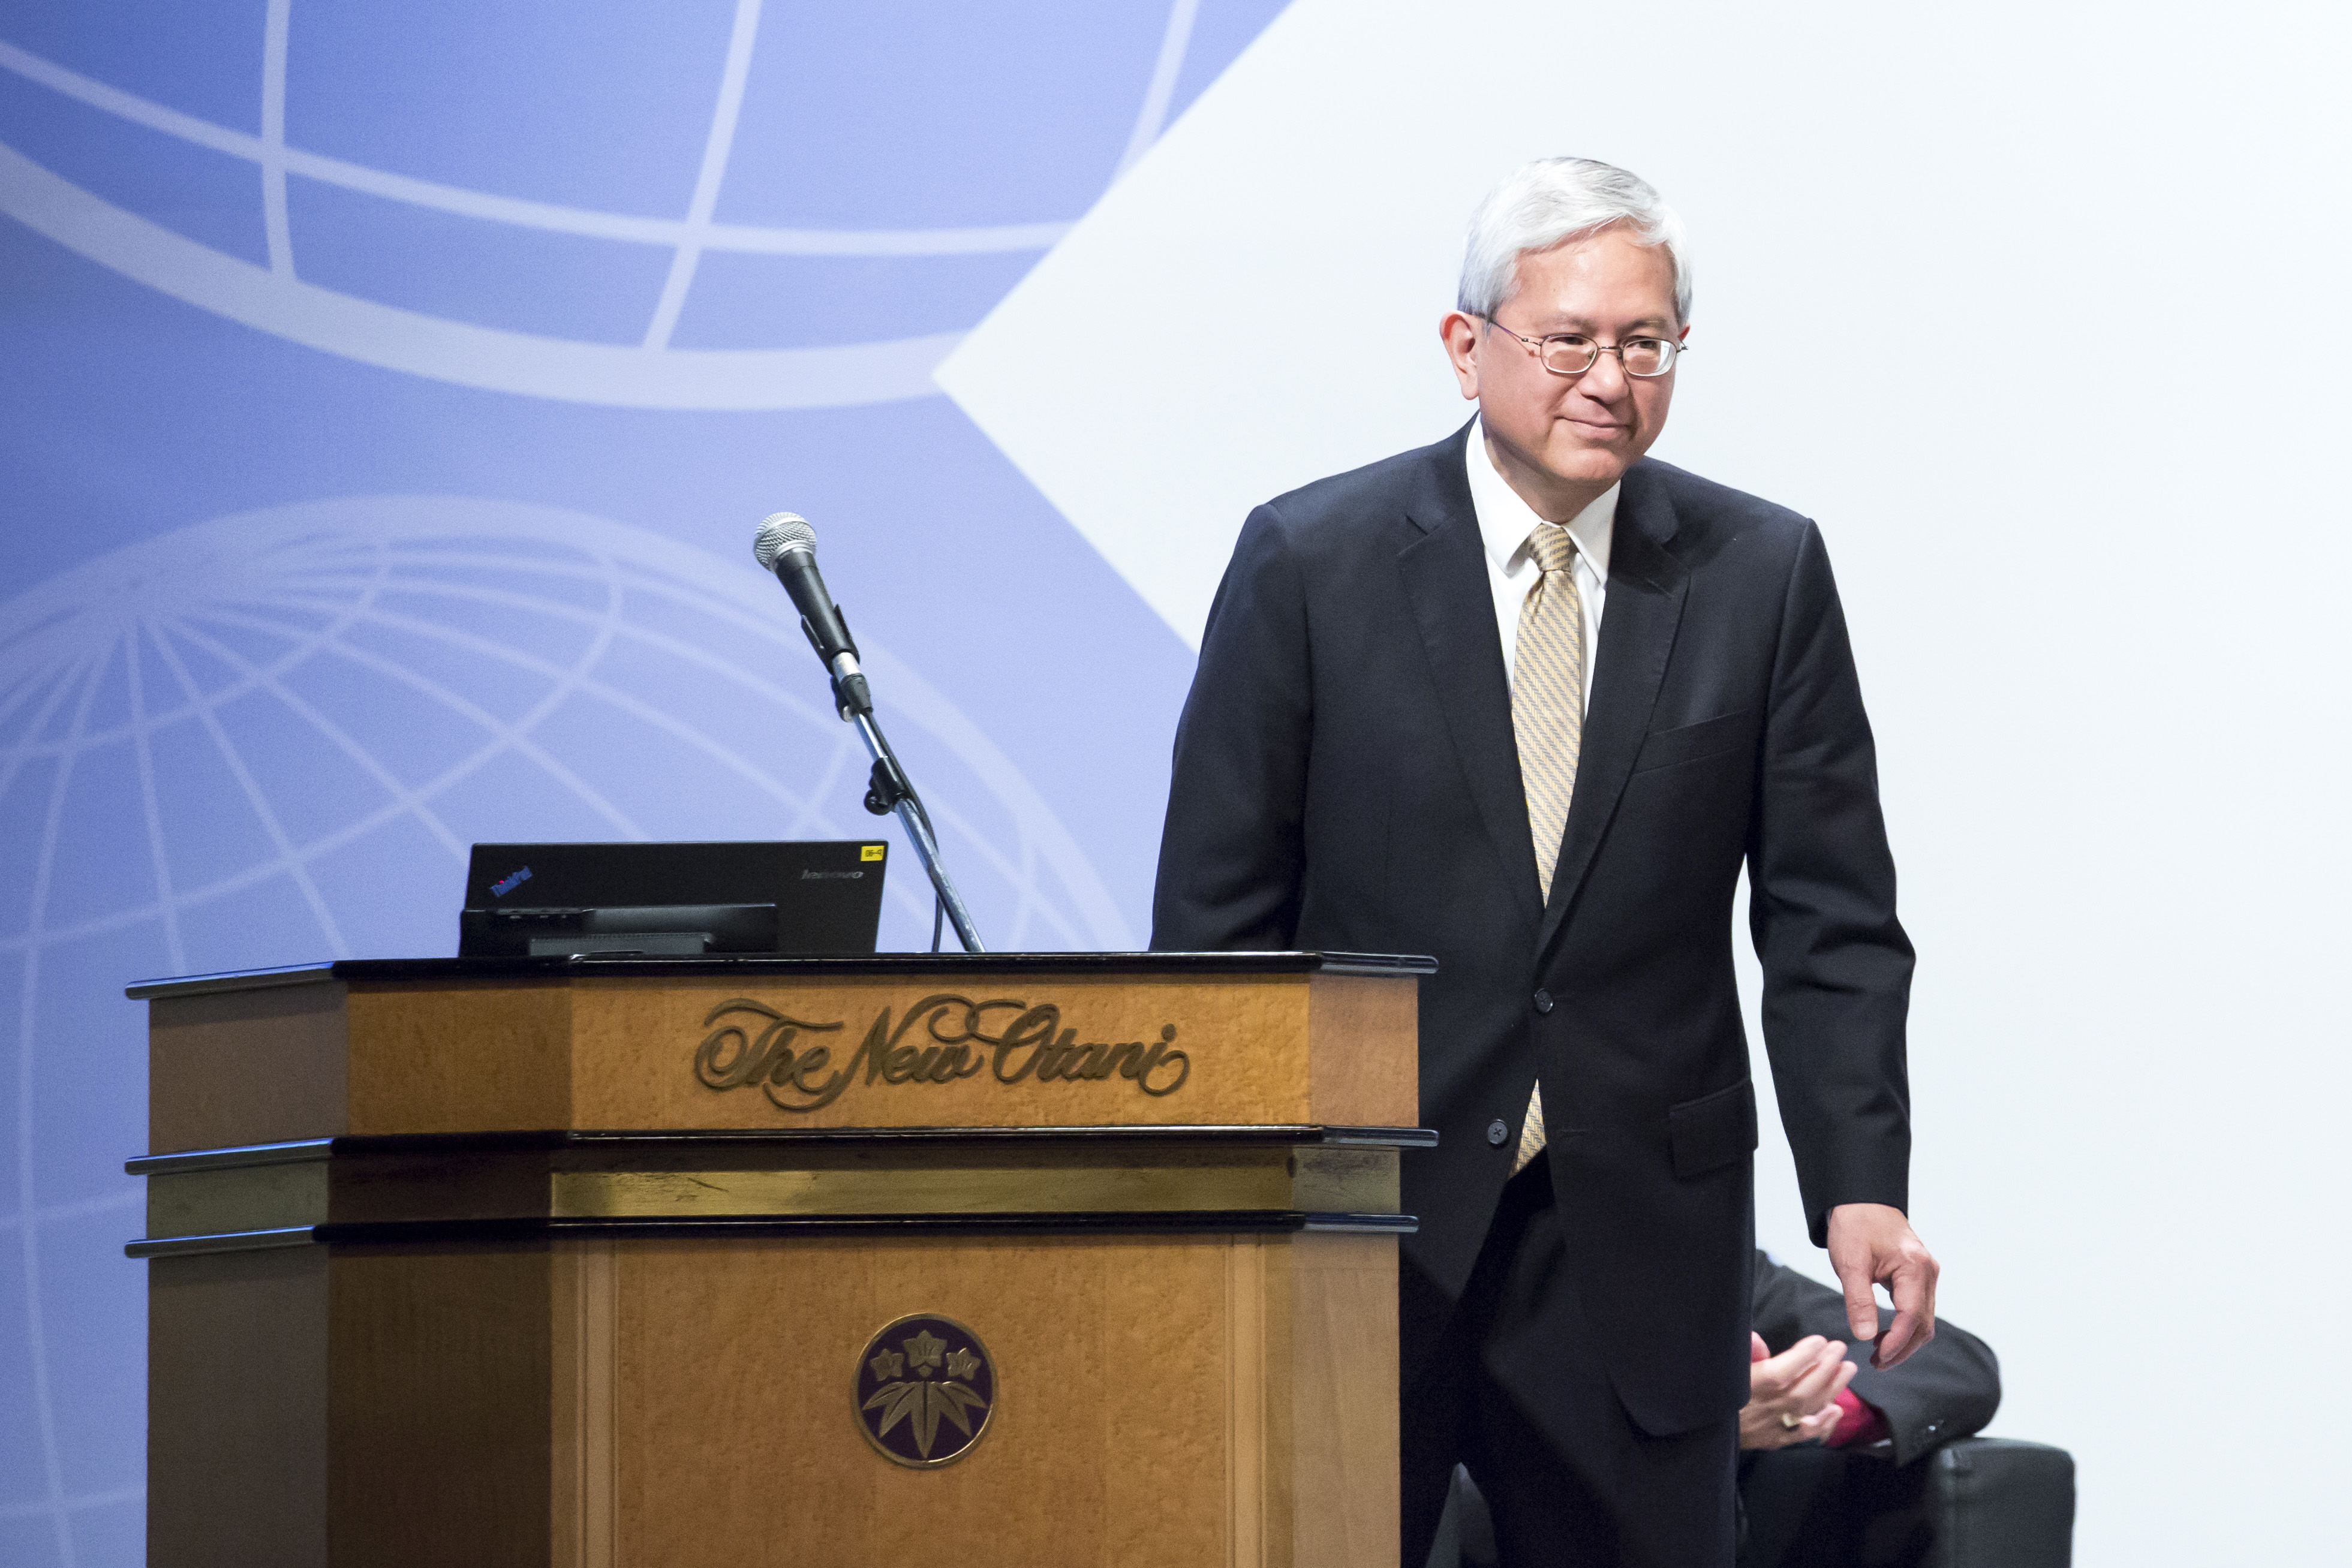 Elder Gerrit W. Gong of the Quorum of the Twelve Apostles of The Church of Jesus Christ of Latter-day Saints leaves the podium after delivering a speech during the G20 Interfaith Forum in Chiba, Japan, on Saturday, June 8, 2019.